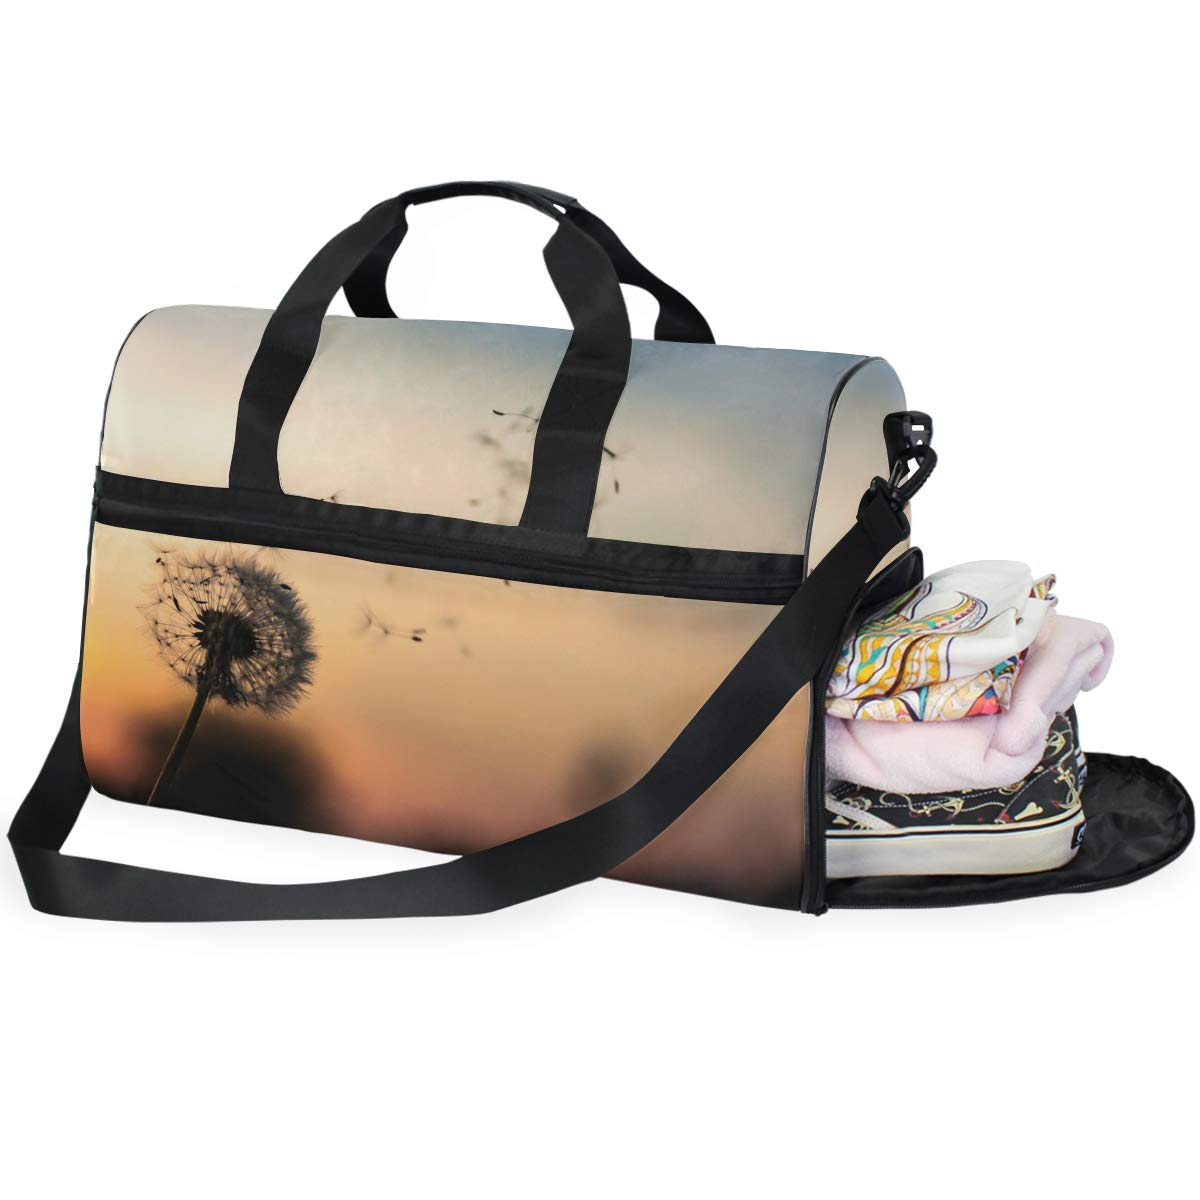 Gym Vacation Travel Duffel Bag Waterproof Lightweight Luggage bag for Sports